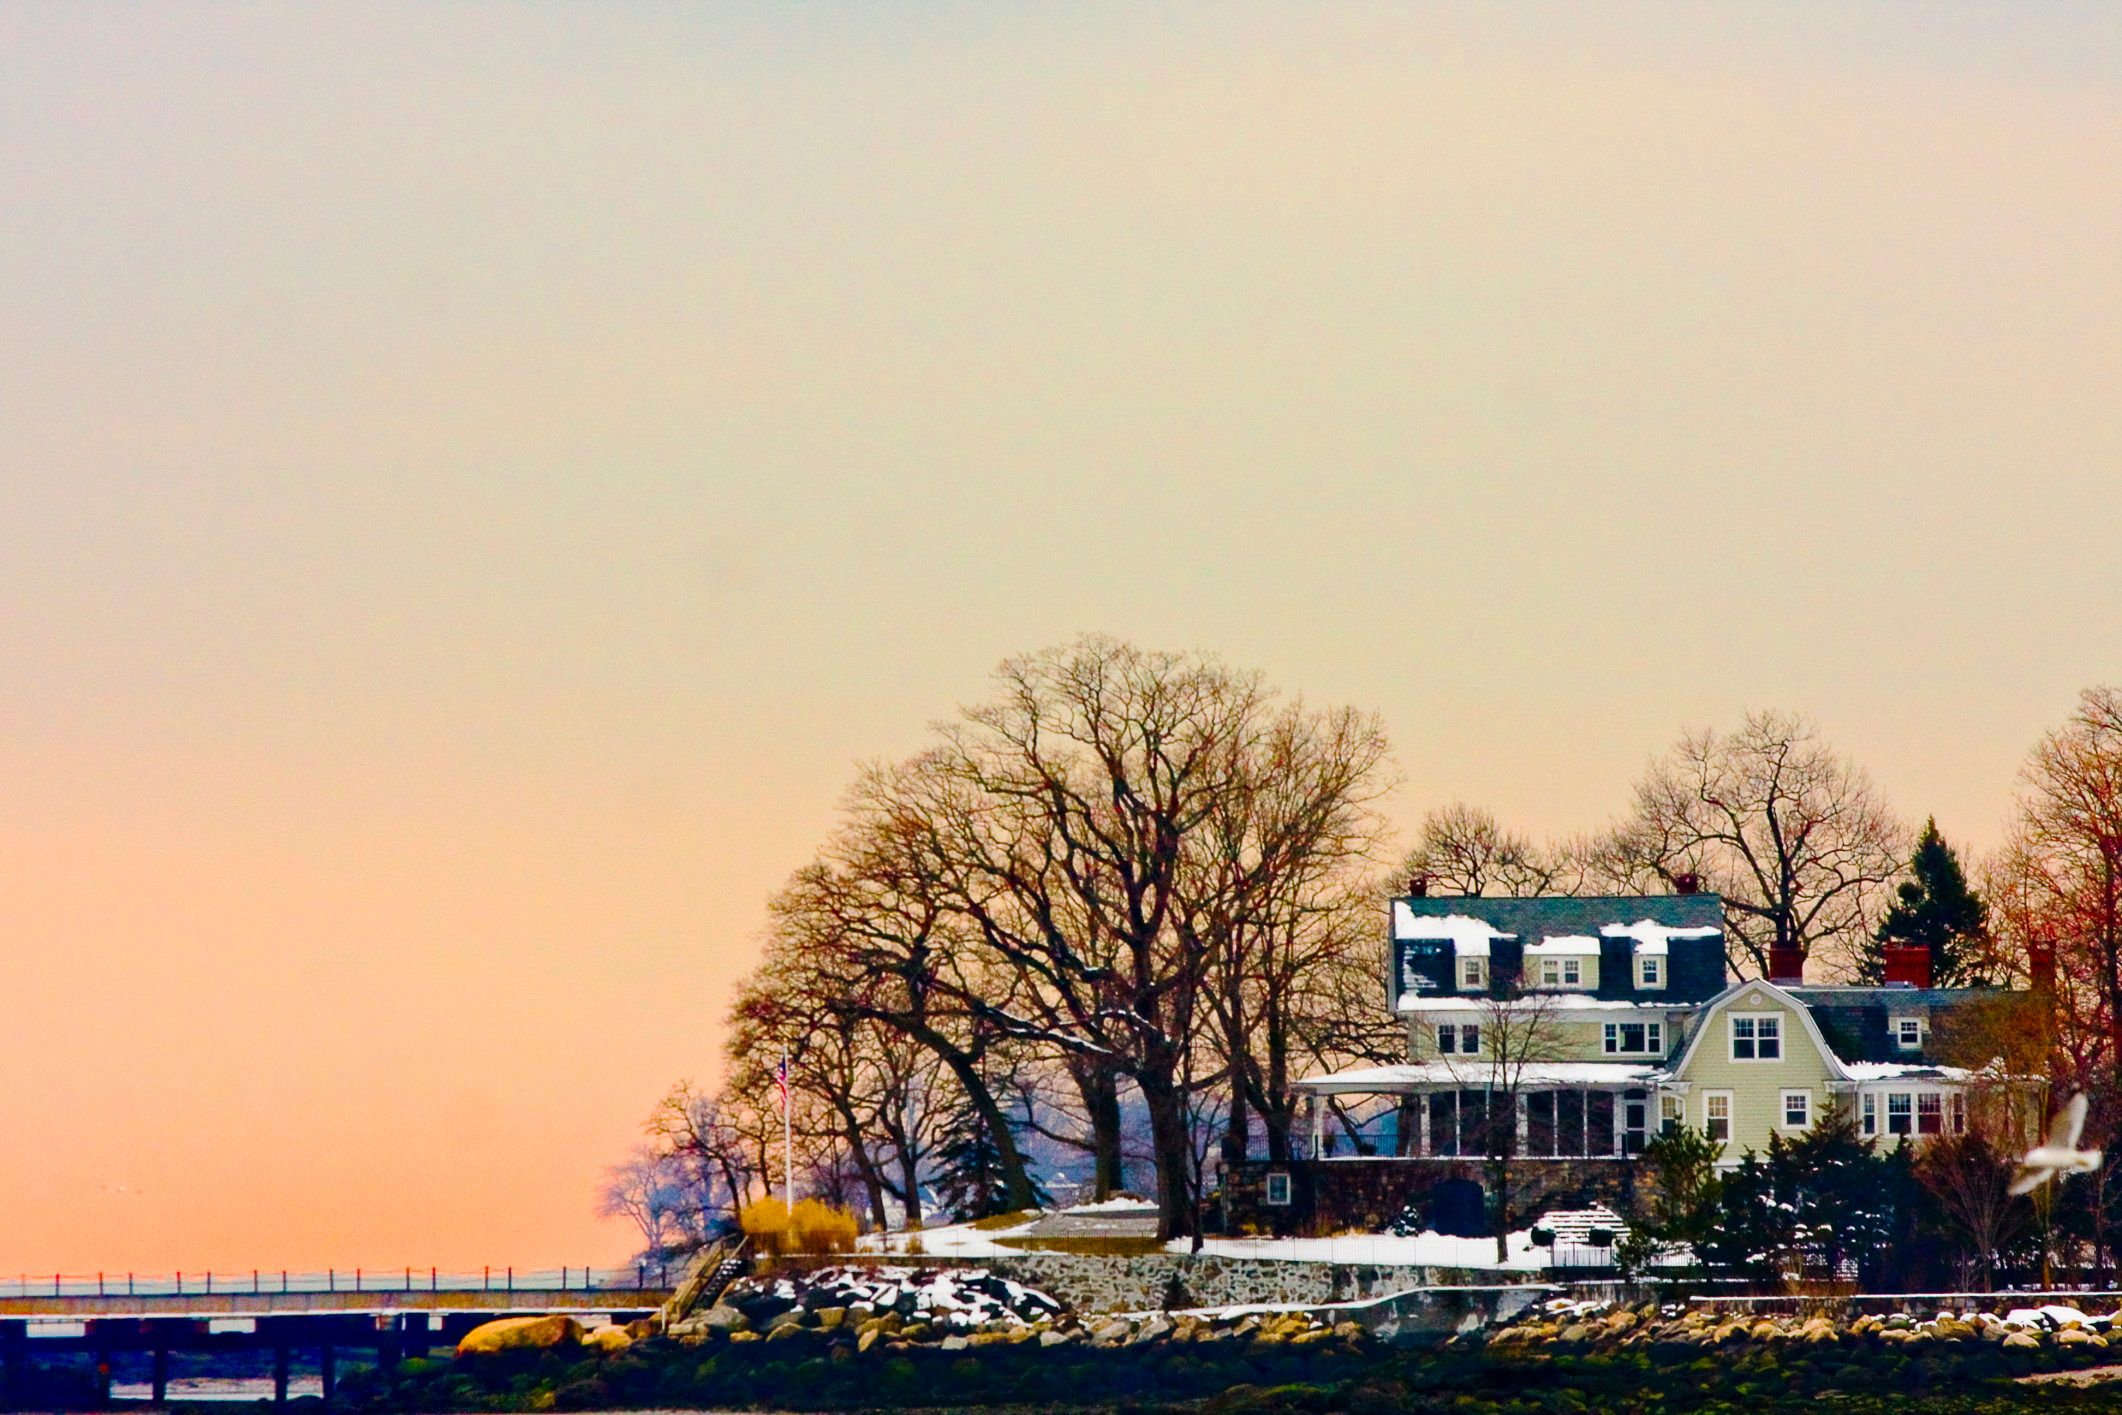 A New England style house in Stamford, CT overlooks the Long Island Sound in winter time.